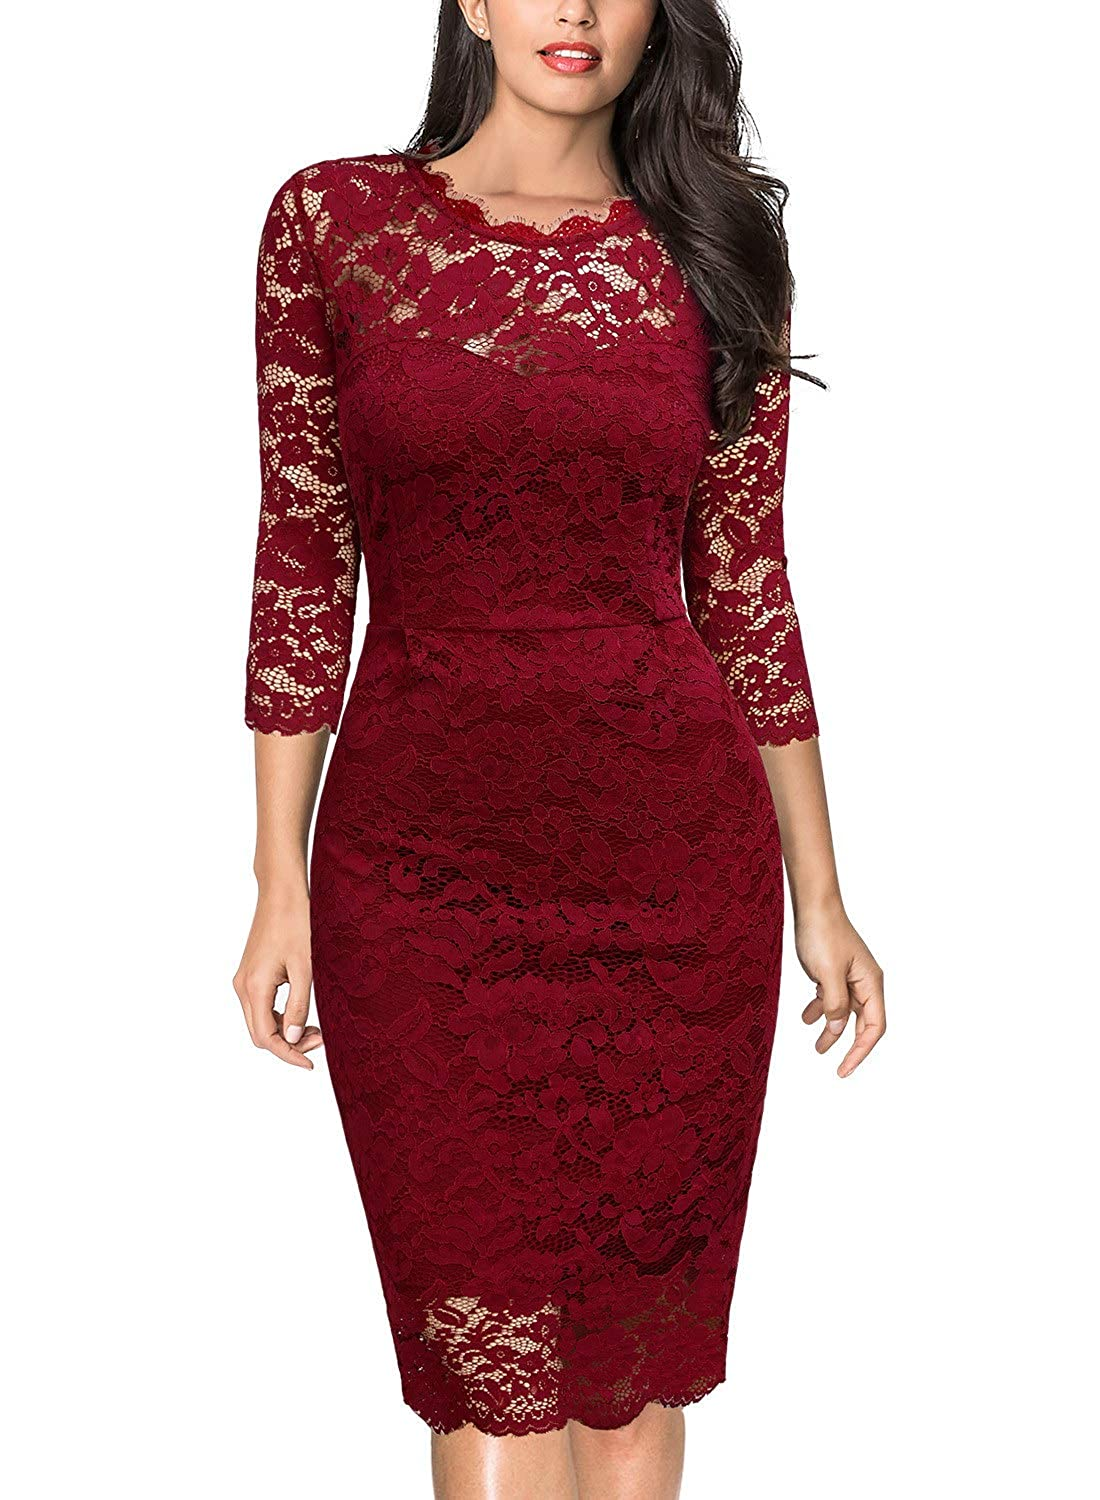 Hred Miusol Women's Retro Floral Lace Long Sleeve Slim Evening Cocktail Mini Dress